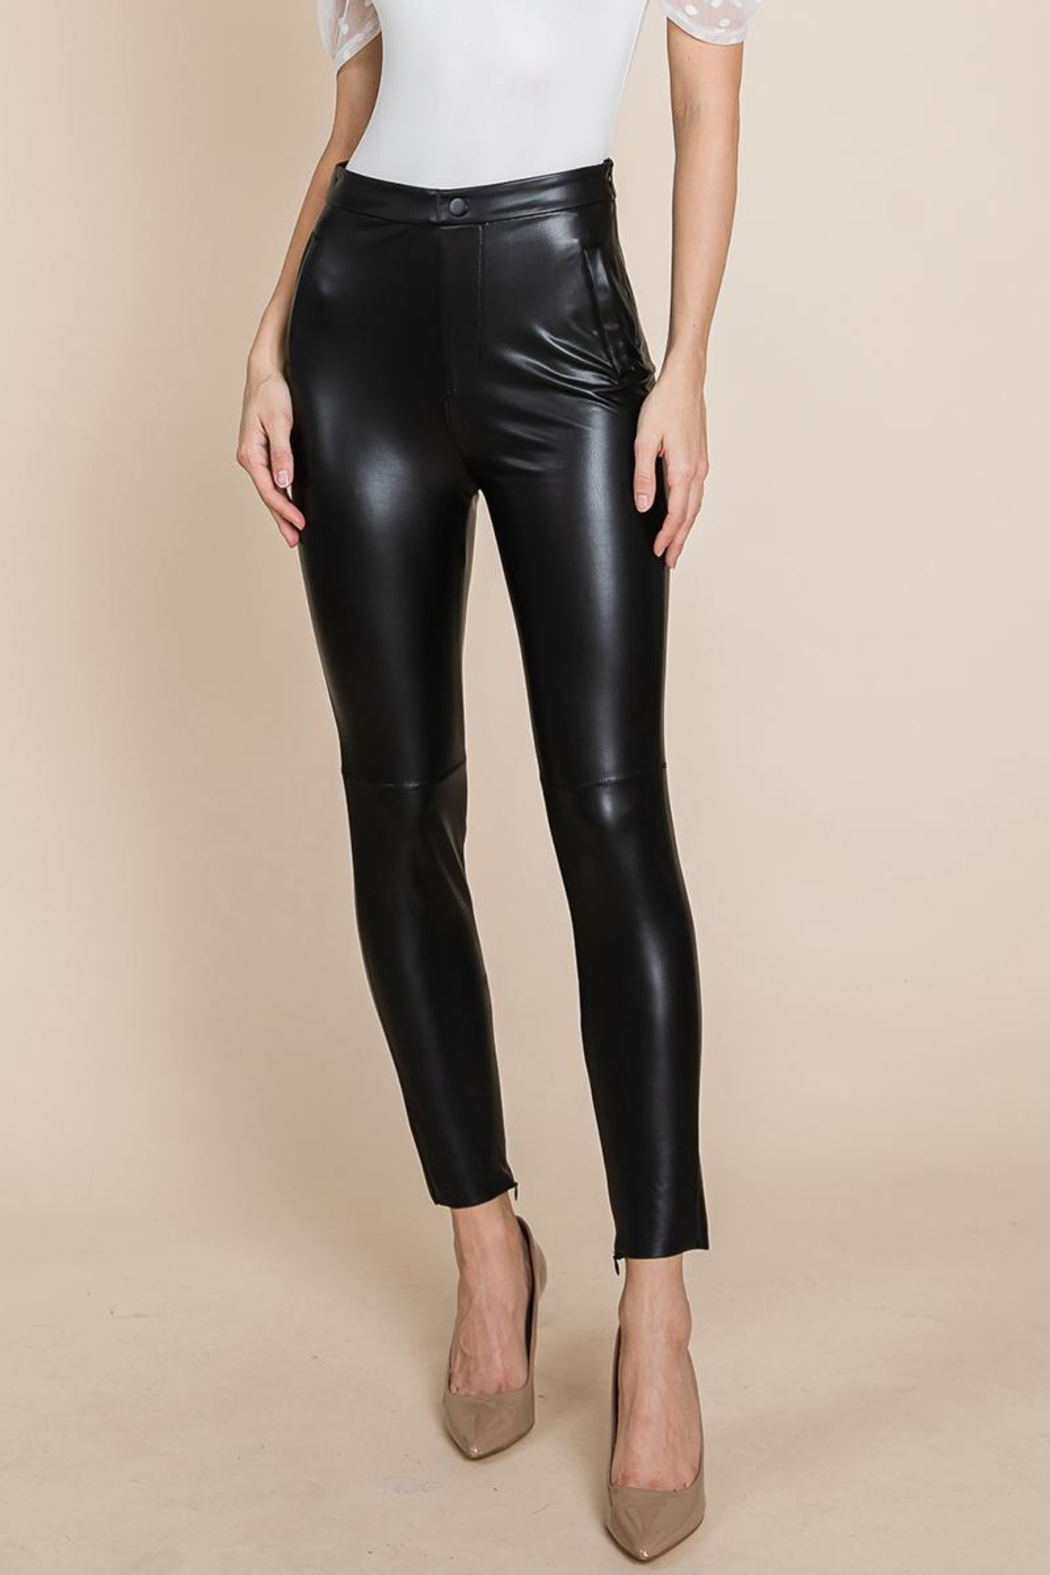 ROLYPOLY Apparel Slit Hem Faux Leather Pants With Invisible Zipper - Main Image